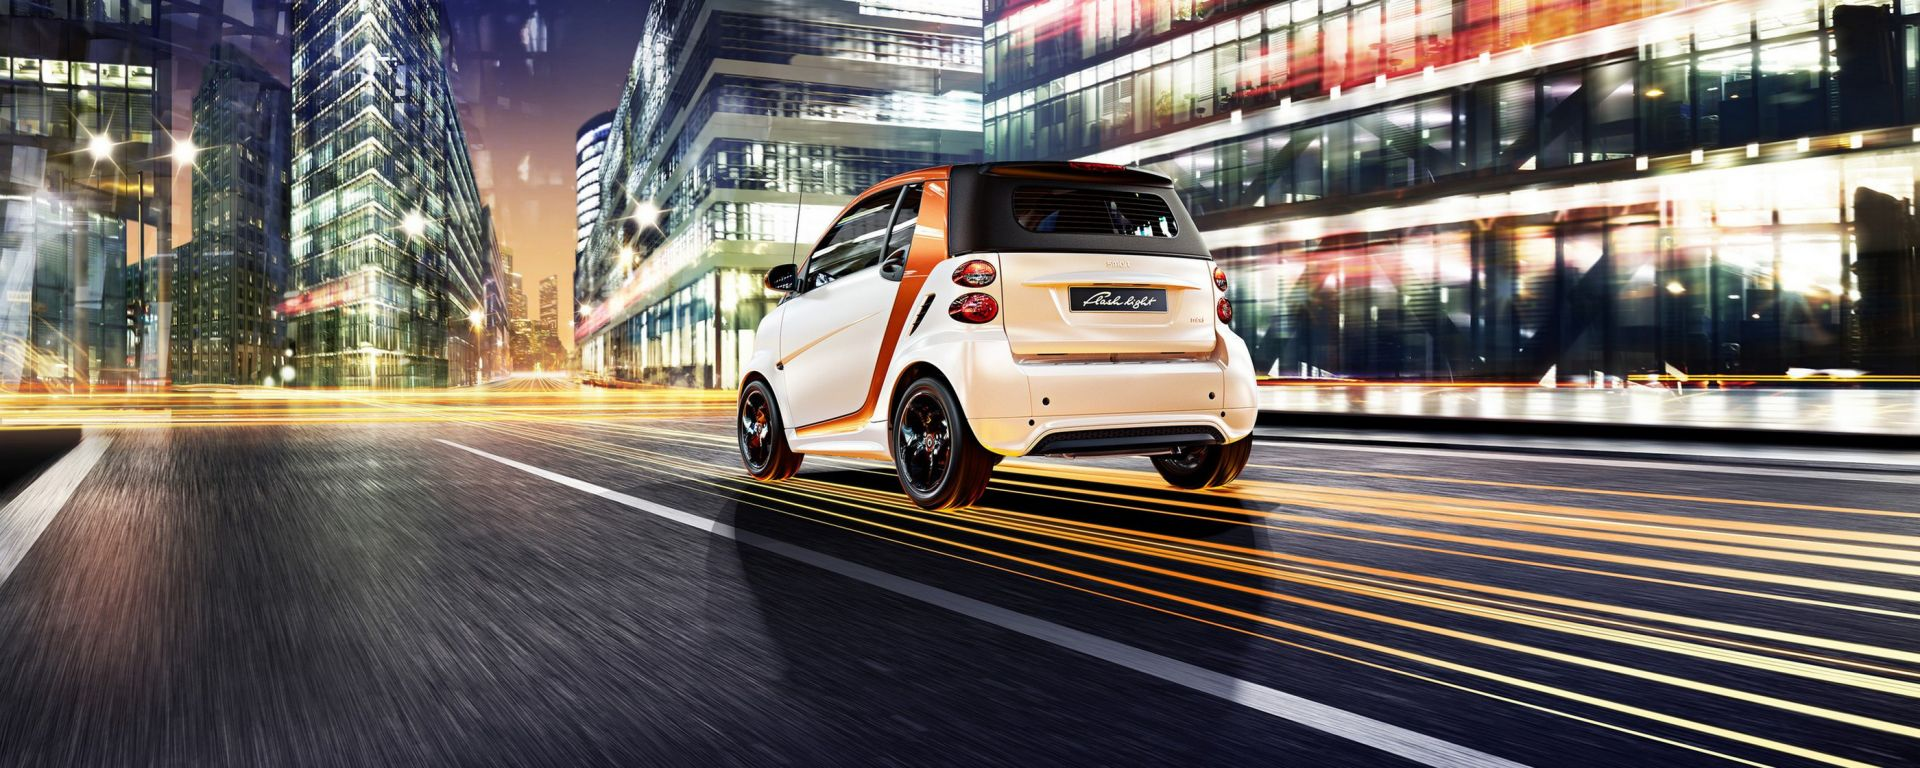 Smart fortwo edition flashlight